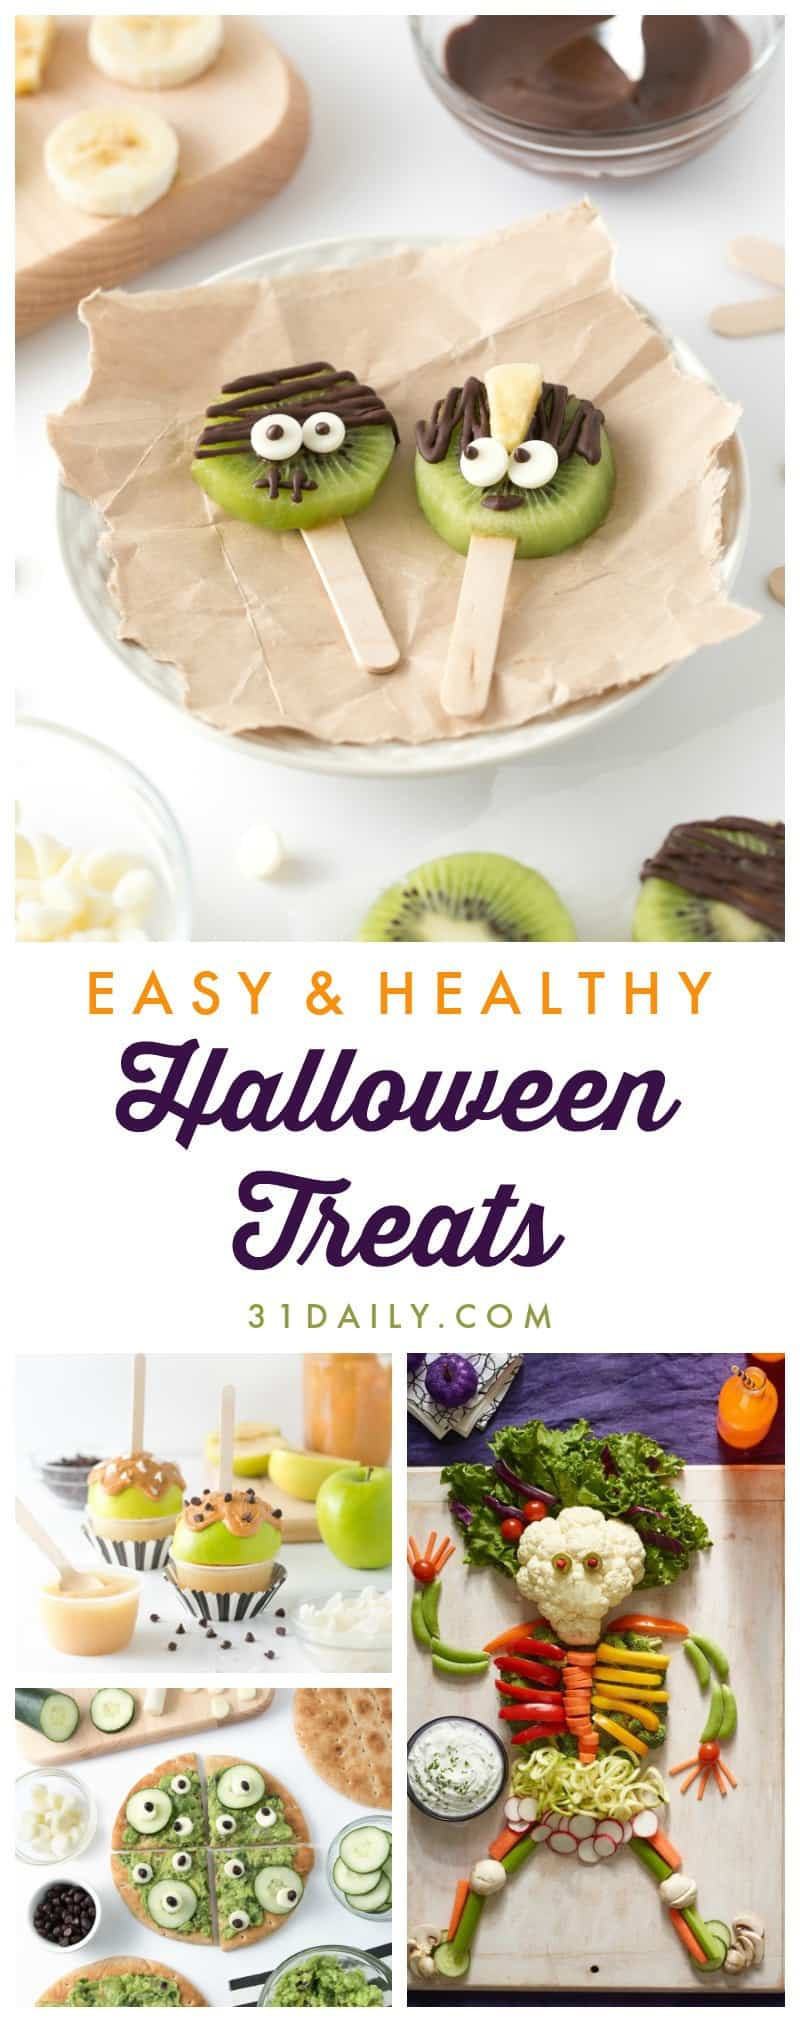 easy fun healthy halloween treats your trick or treaters will love 31daily